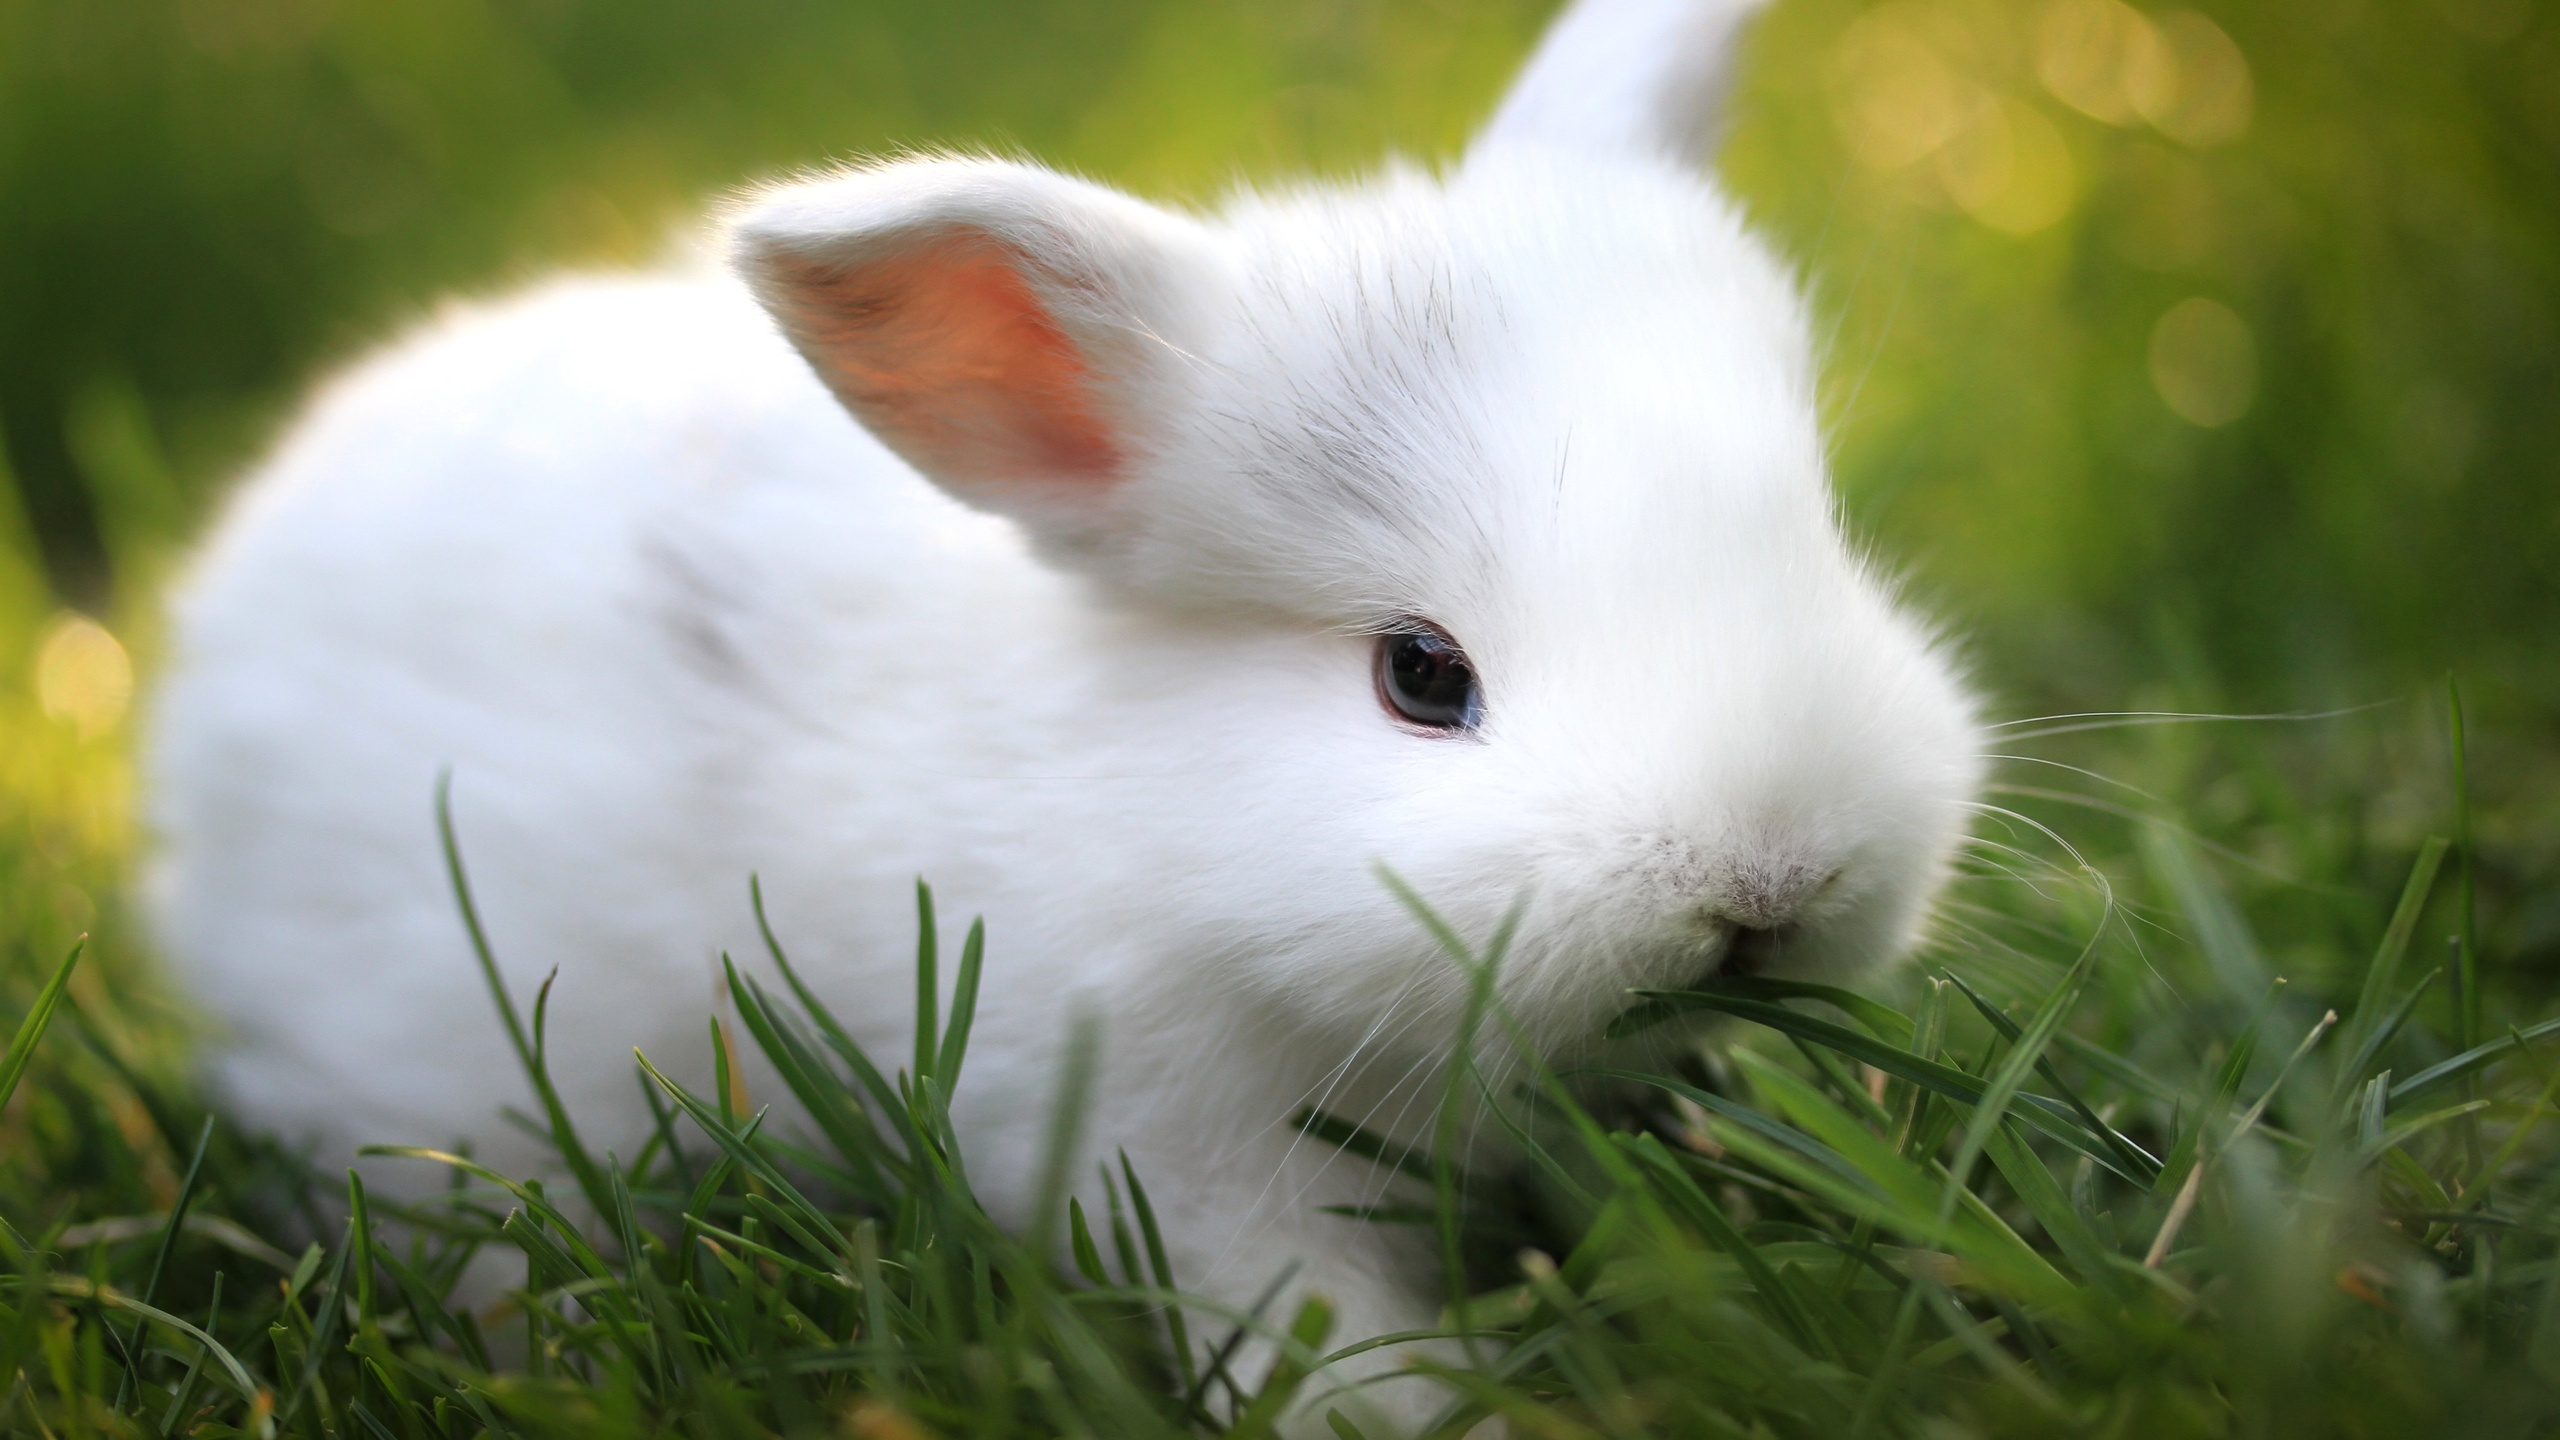 Cute White Rabbit Wallpapers For Desktop: Wallpaper, High Definition, High Quality